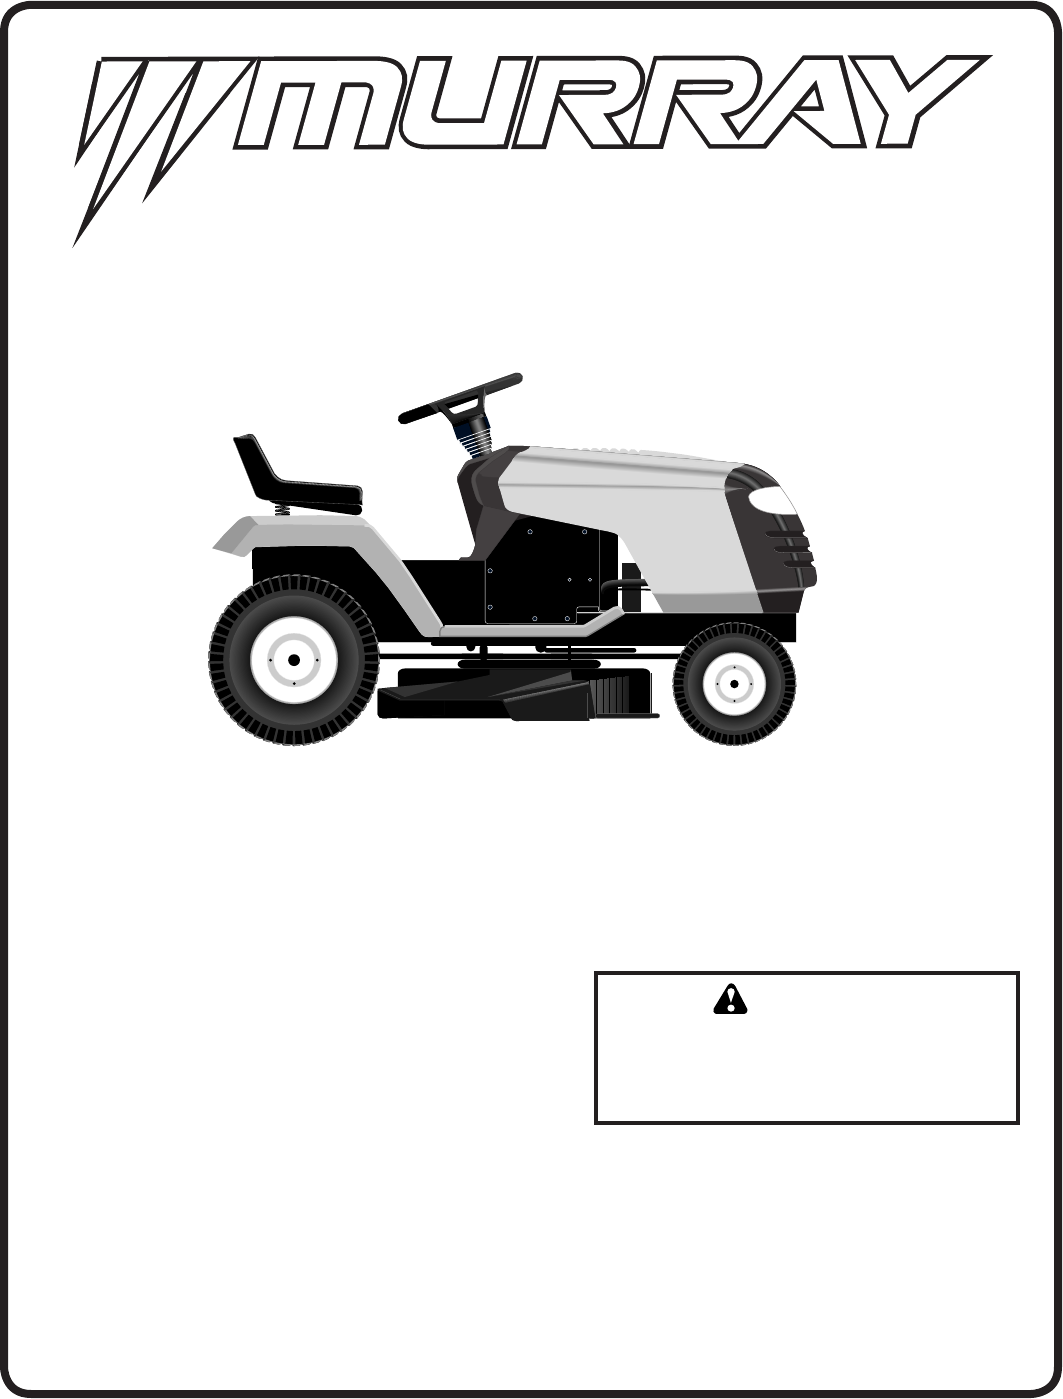 murray lawn mower mb1842lt user guide manualsonline com murray lawn mower schematics model 46379x92 murray lawn mower parts canada